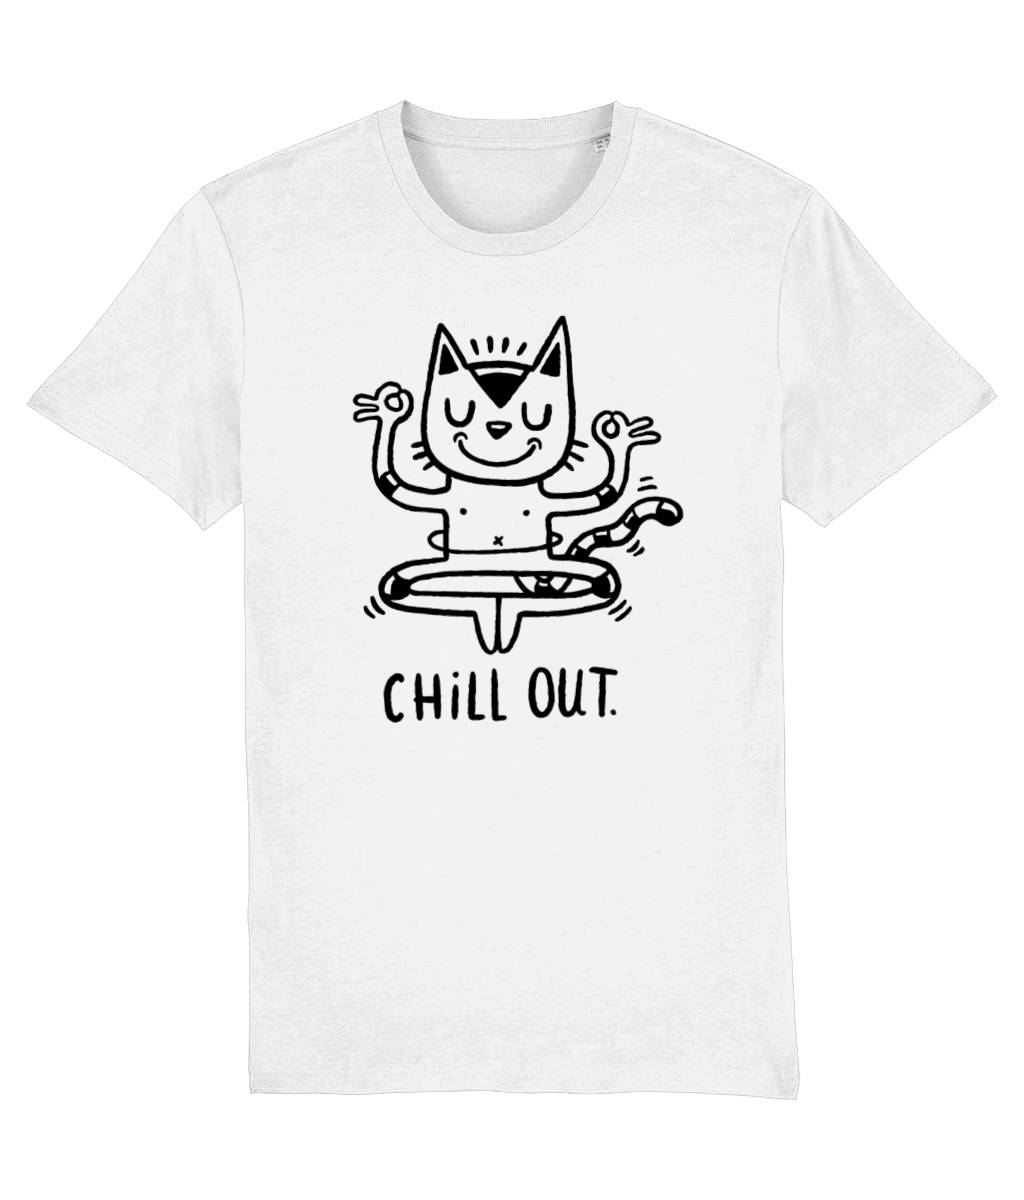 'Chill Out' Unisex T-Shirt